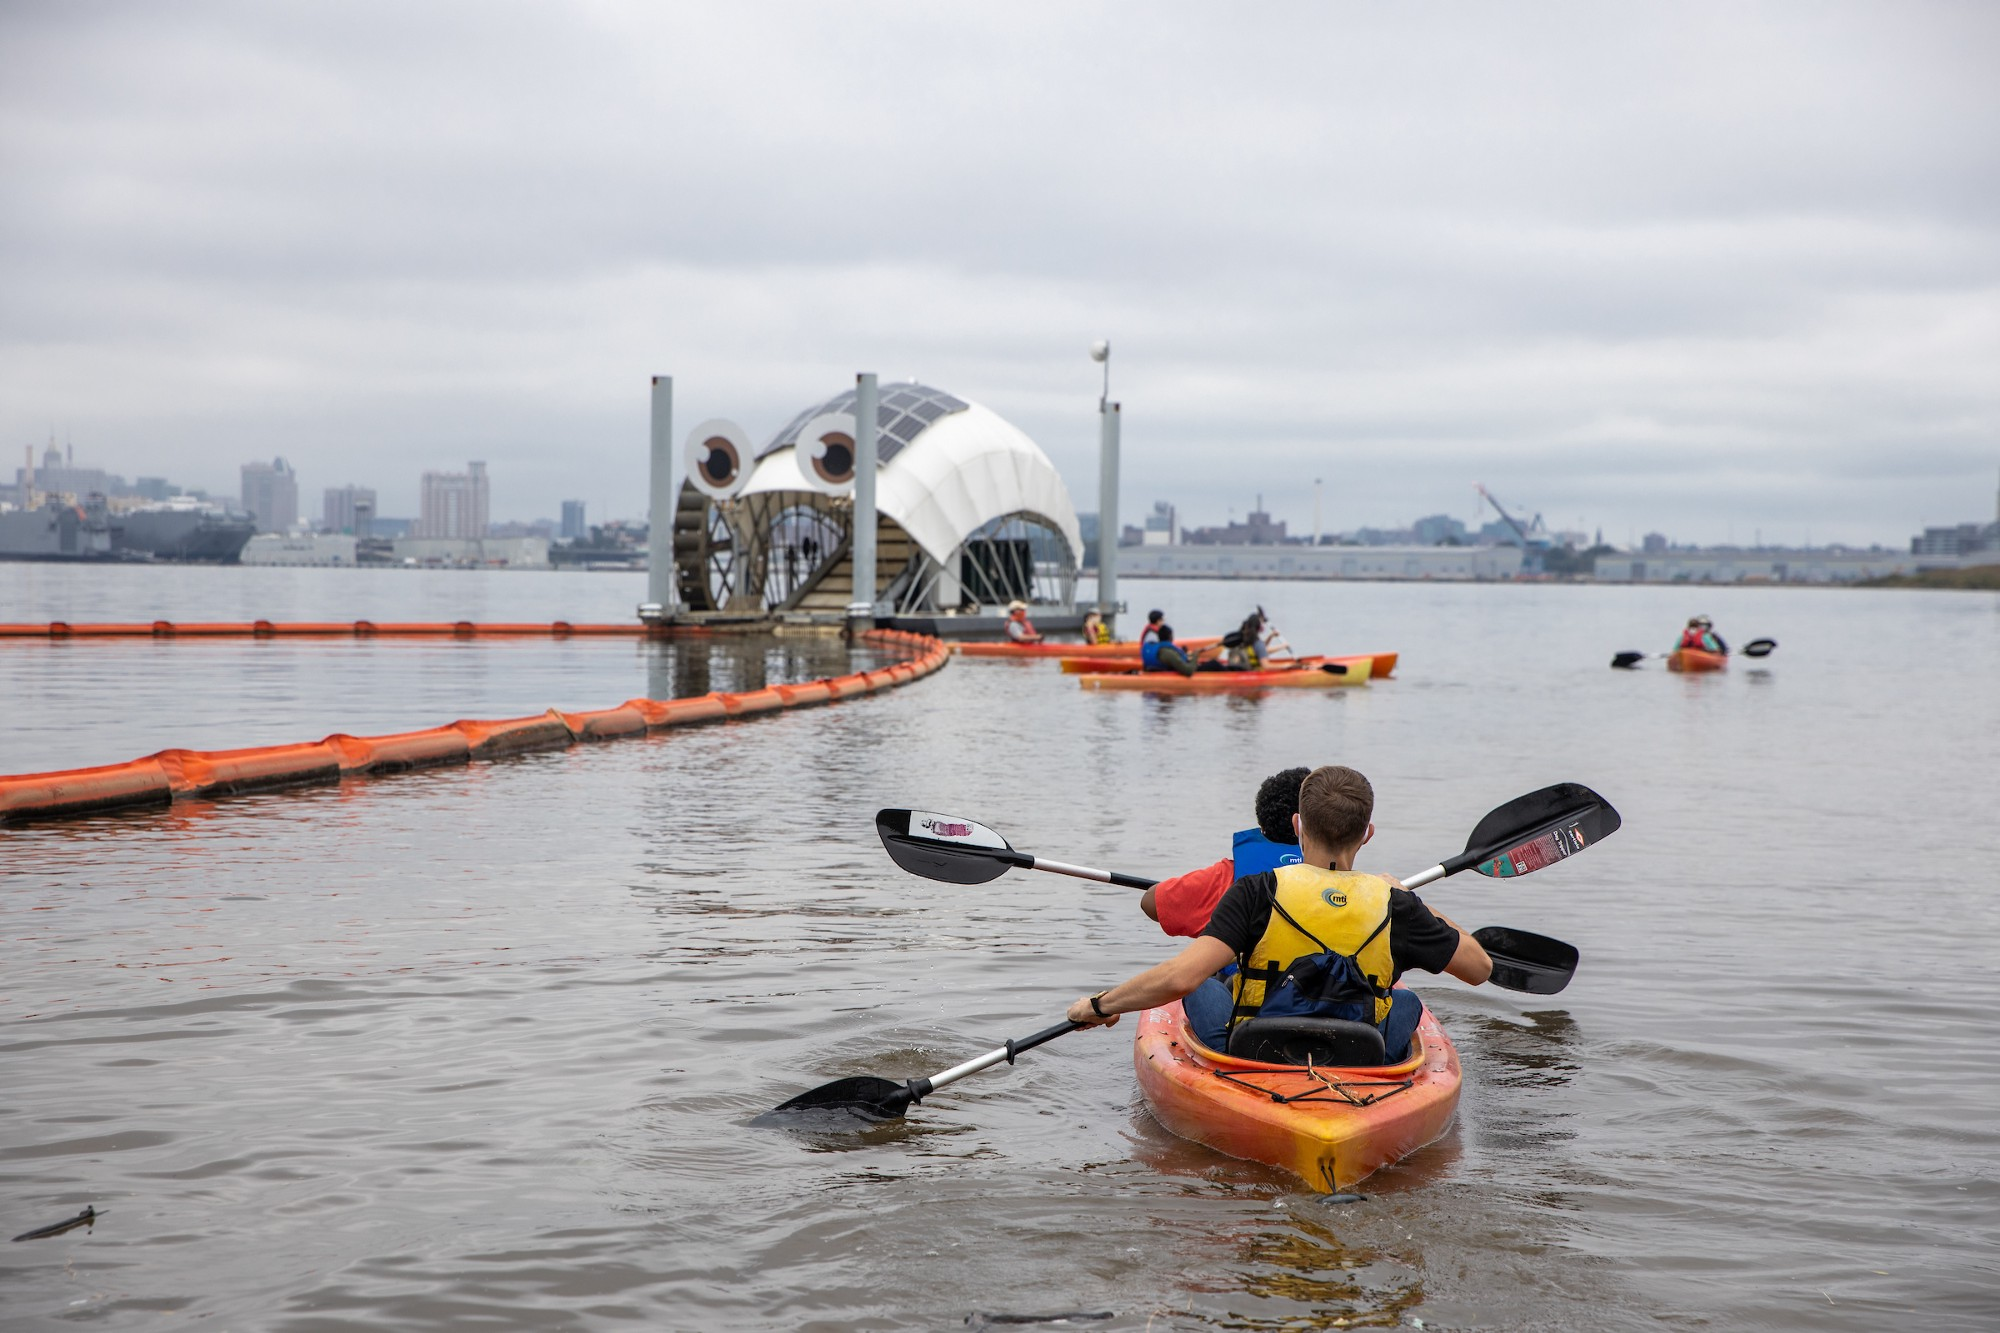 a two person kayak paddles towards a floating structure with eyes and more boaters